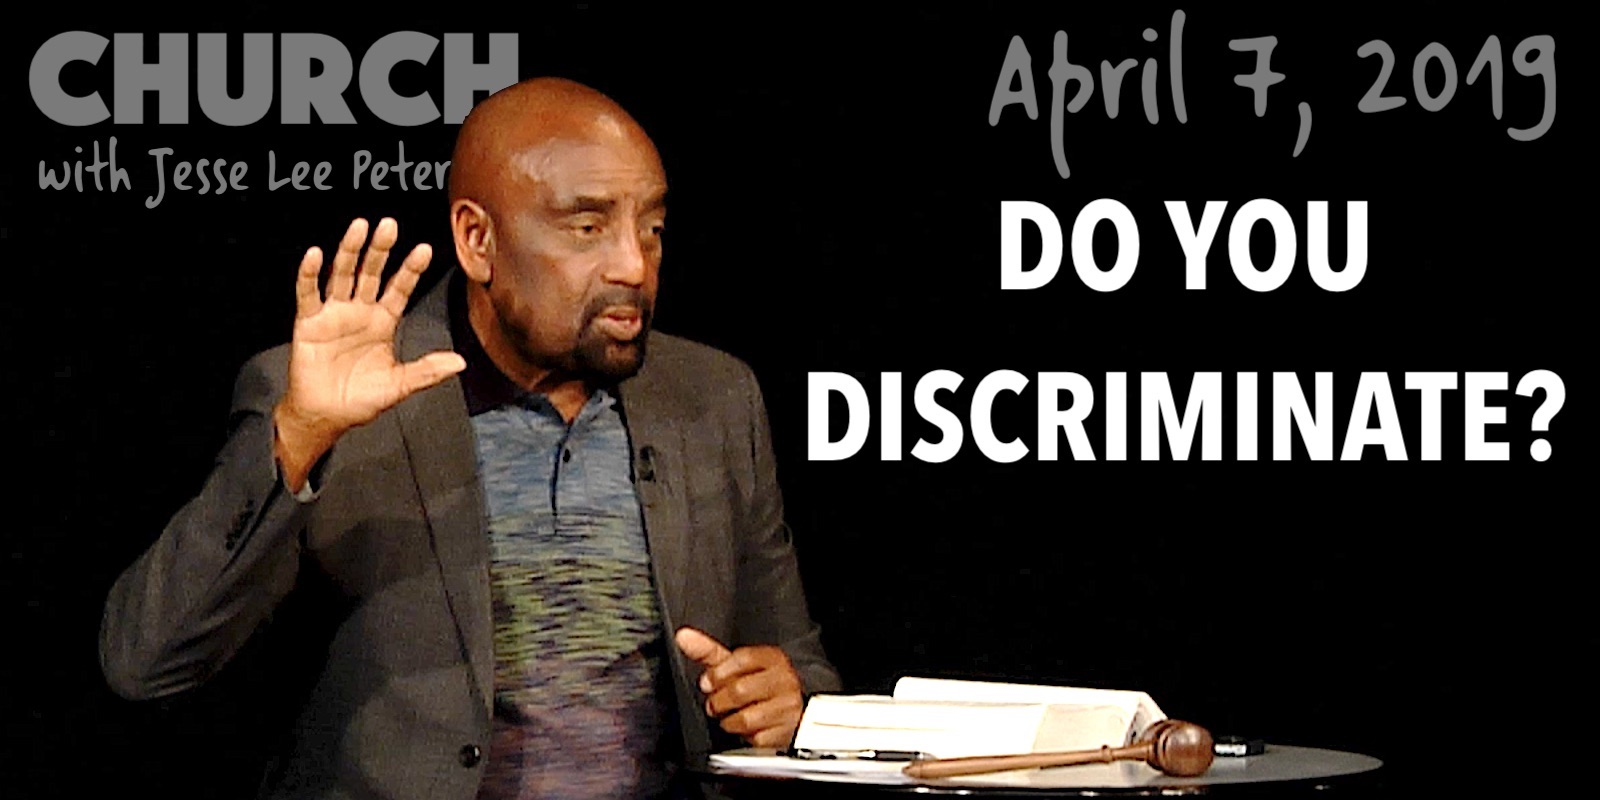 Do You Discriminate (Church, Apr 7, 2019)